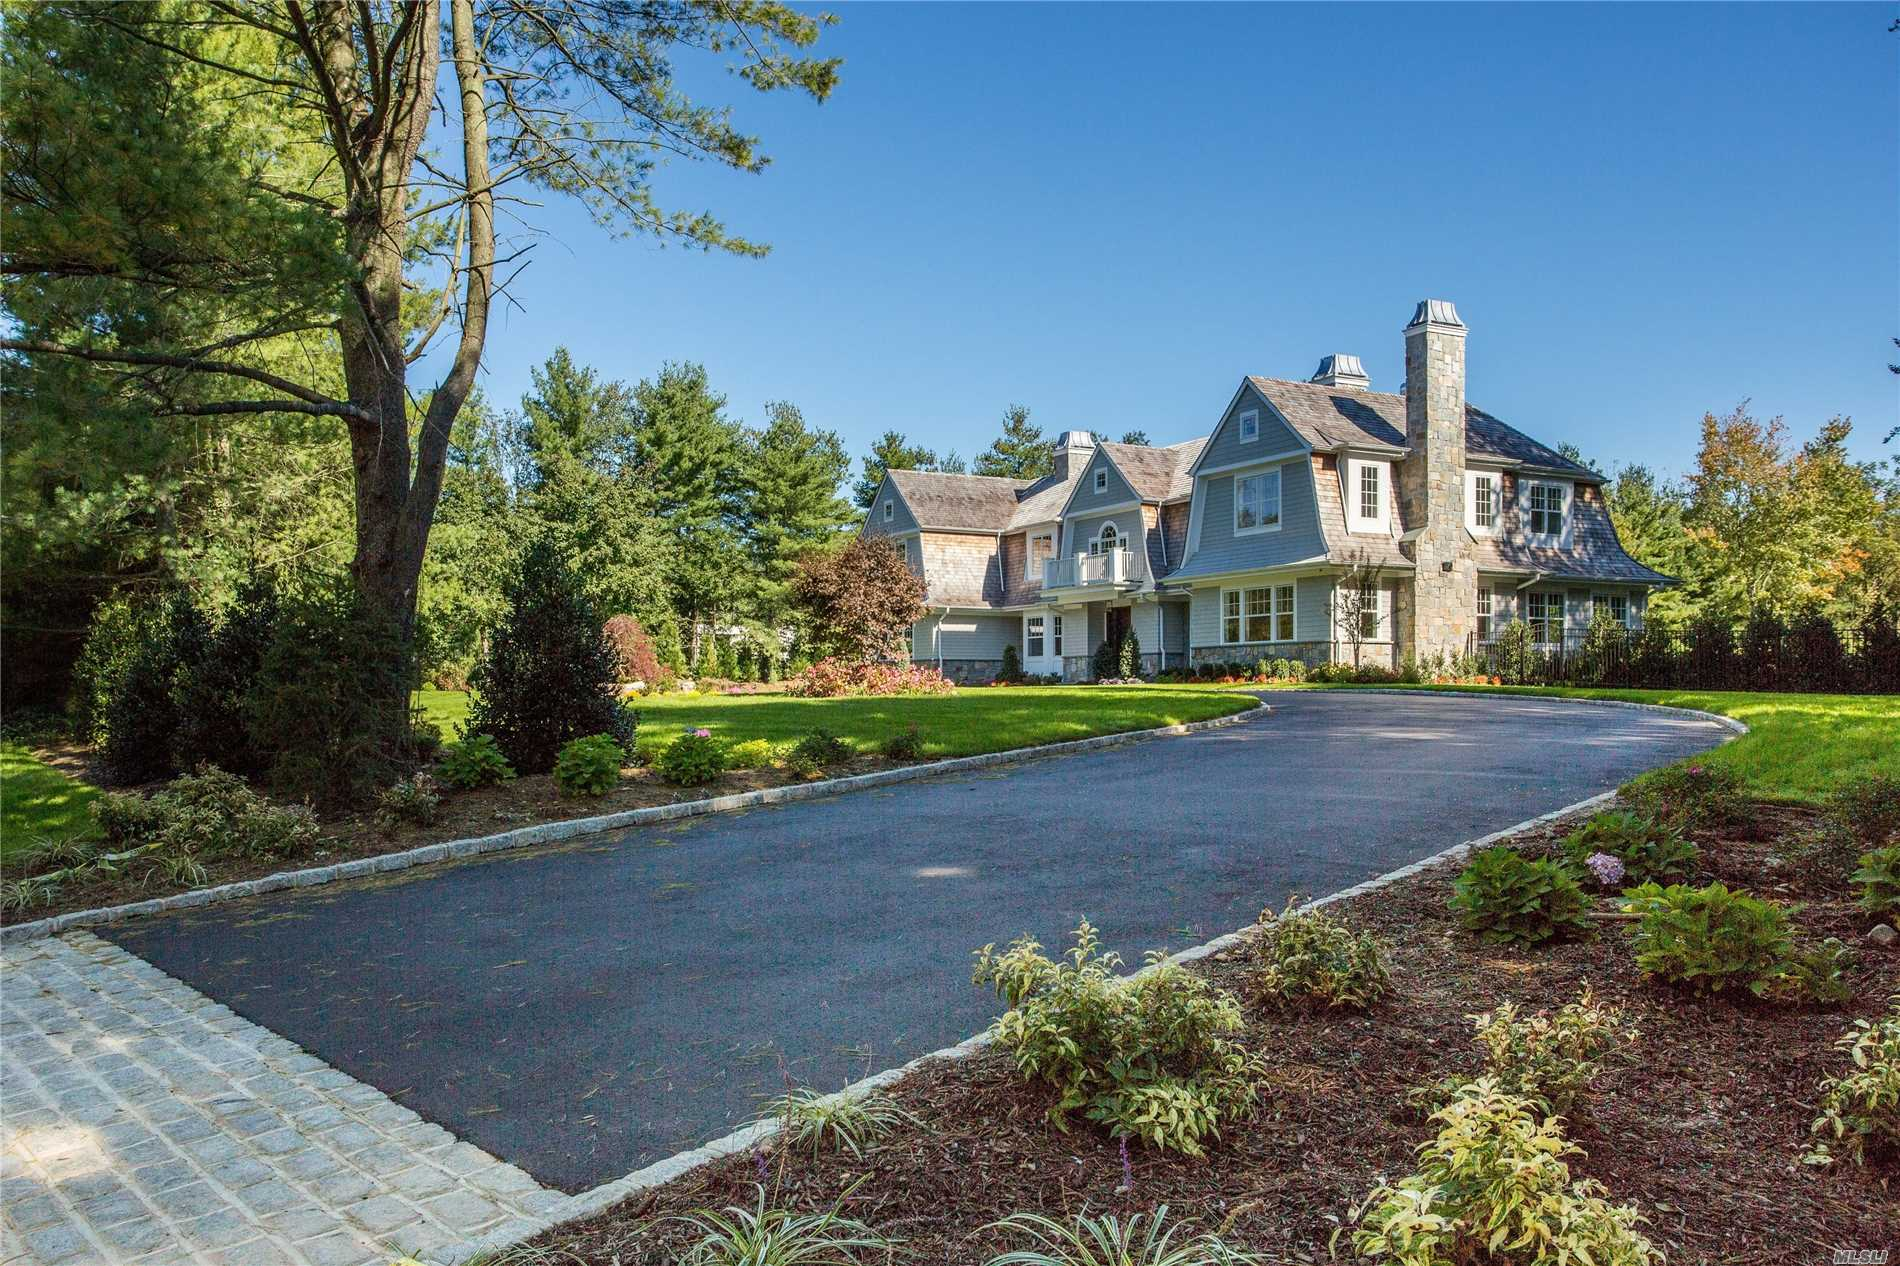 Unparalleled 6,500 Sqft New Const In The Prest Vill Of Old Westbury.Cedar & Stone Hampton Style Colonial To Be Built By Noted Gold Coast Builders. 2 Flat Prof Lndscpd Acres. Transitional & Chic W/The Finest Materials.Designr Trim & Moldings,Fdr W/Coff Ceil. 20Ft Grand Ef.Chef's Gourm Kit W/Comm Grade Apps,Mstr Ste W/Fpl,Sit Rm,Wic,Spa Bth.Ig Heated Pool.East Williston Sd.